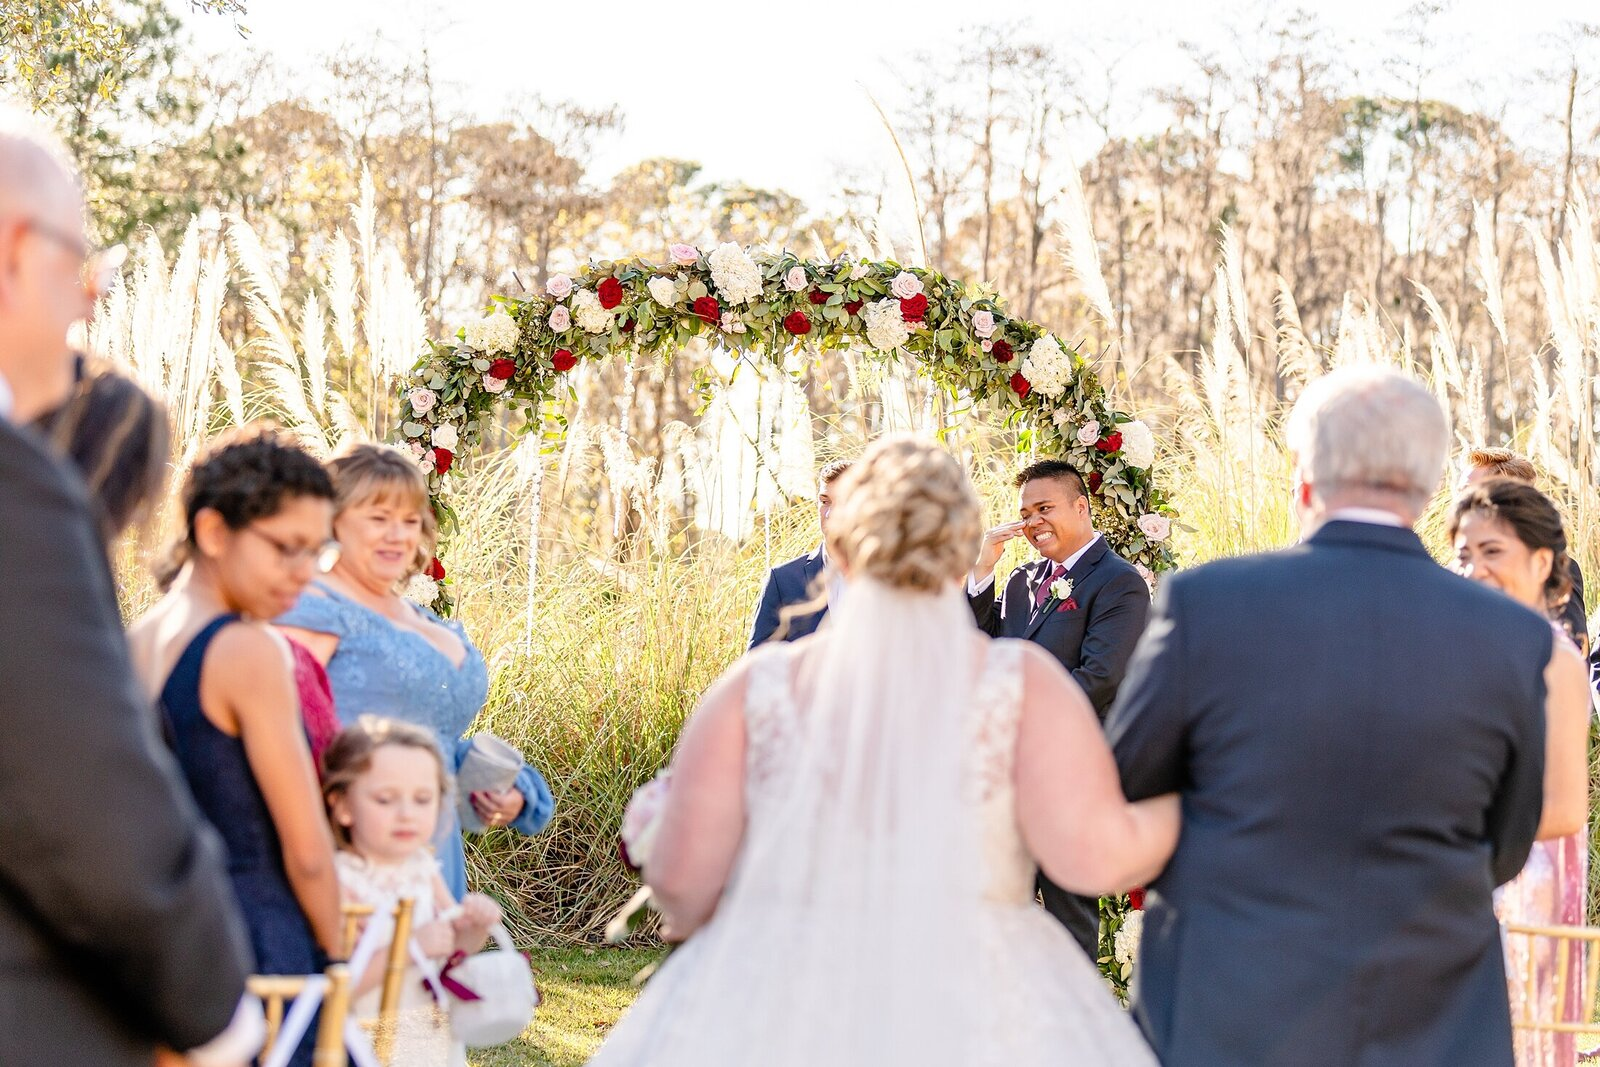 Bride walking down aisle | Four Seasons Wedding | Chynna Pacheco Photography